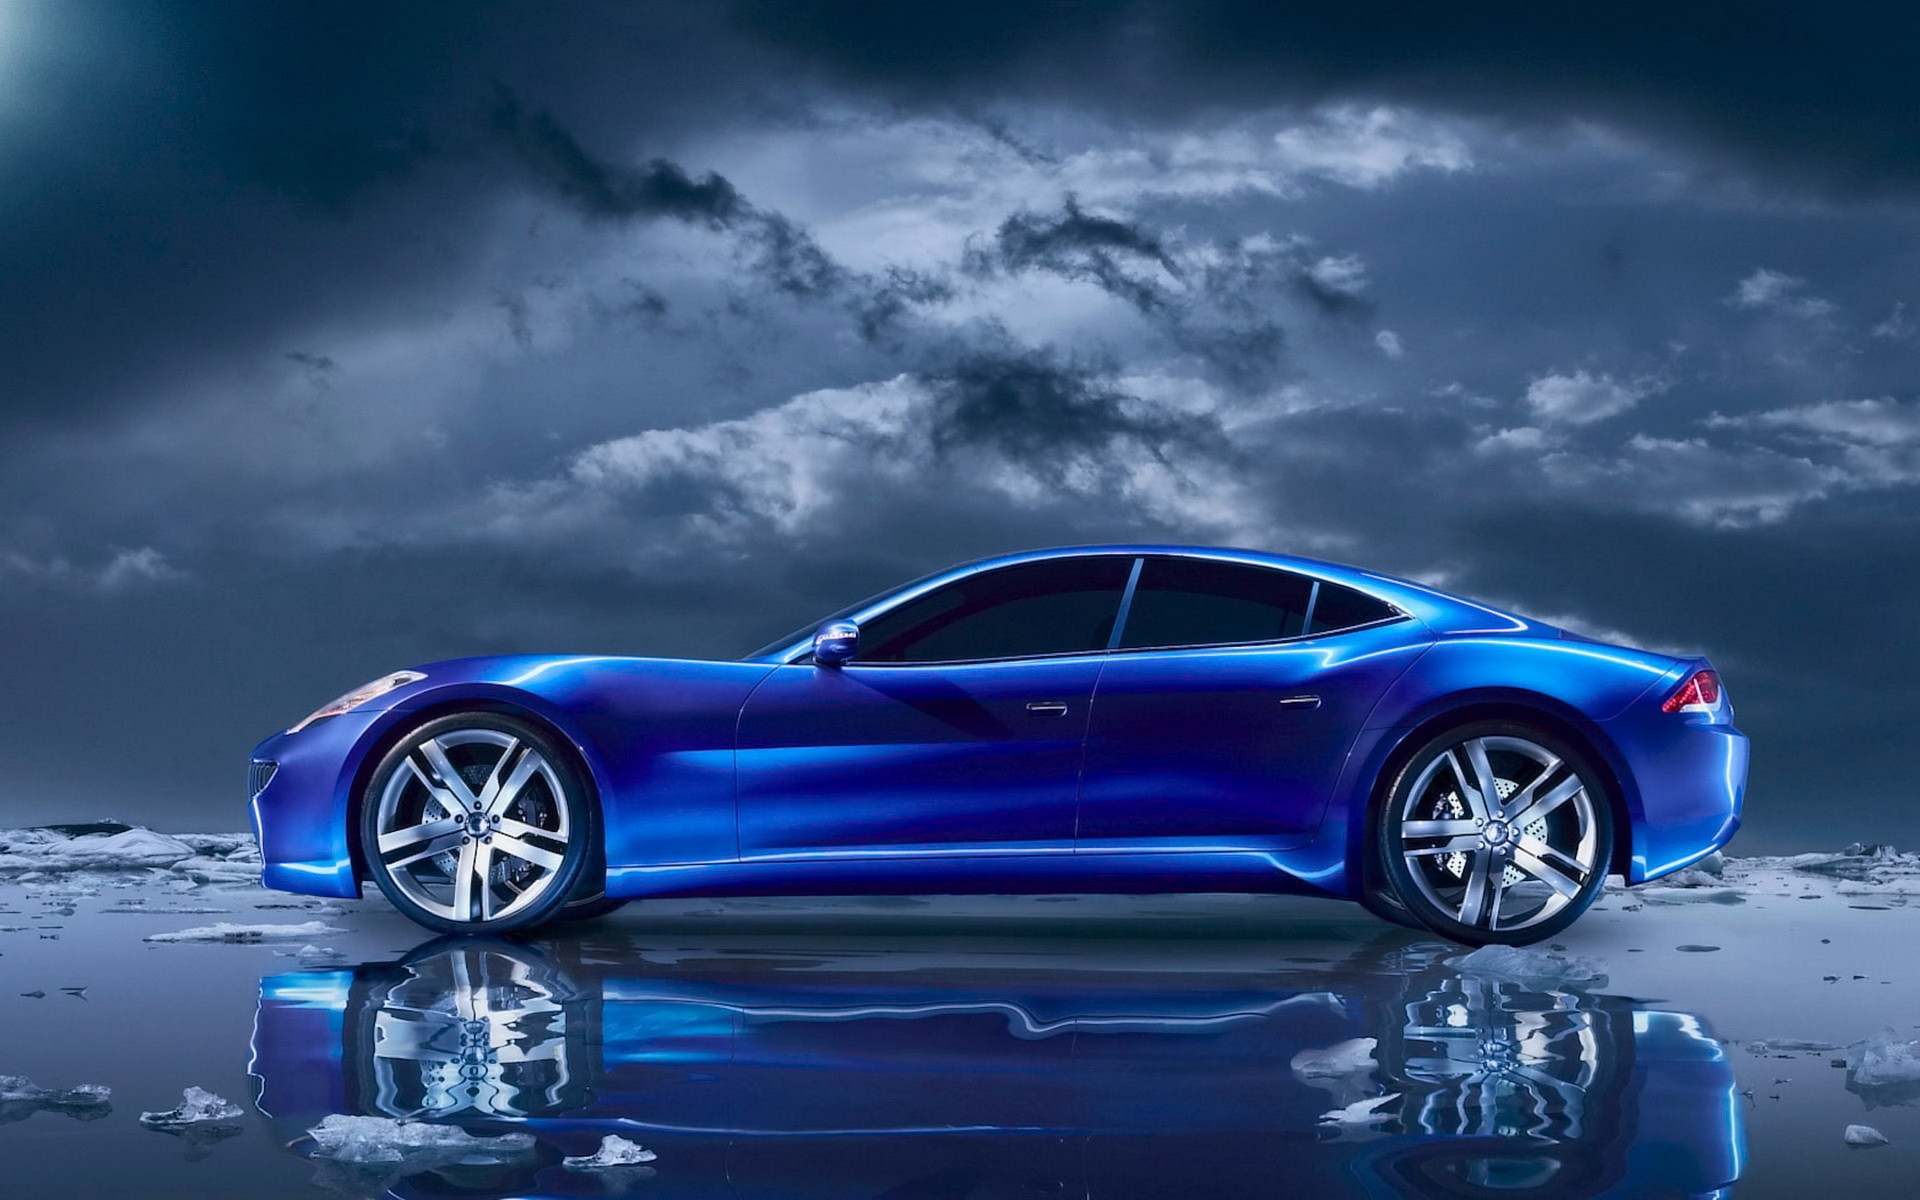 1920x1200 Car Wallpapers | Cars wallpapers themes desktop background images pictures  Cars HD .